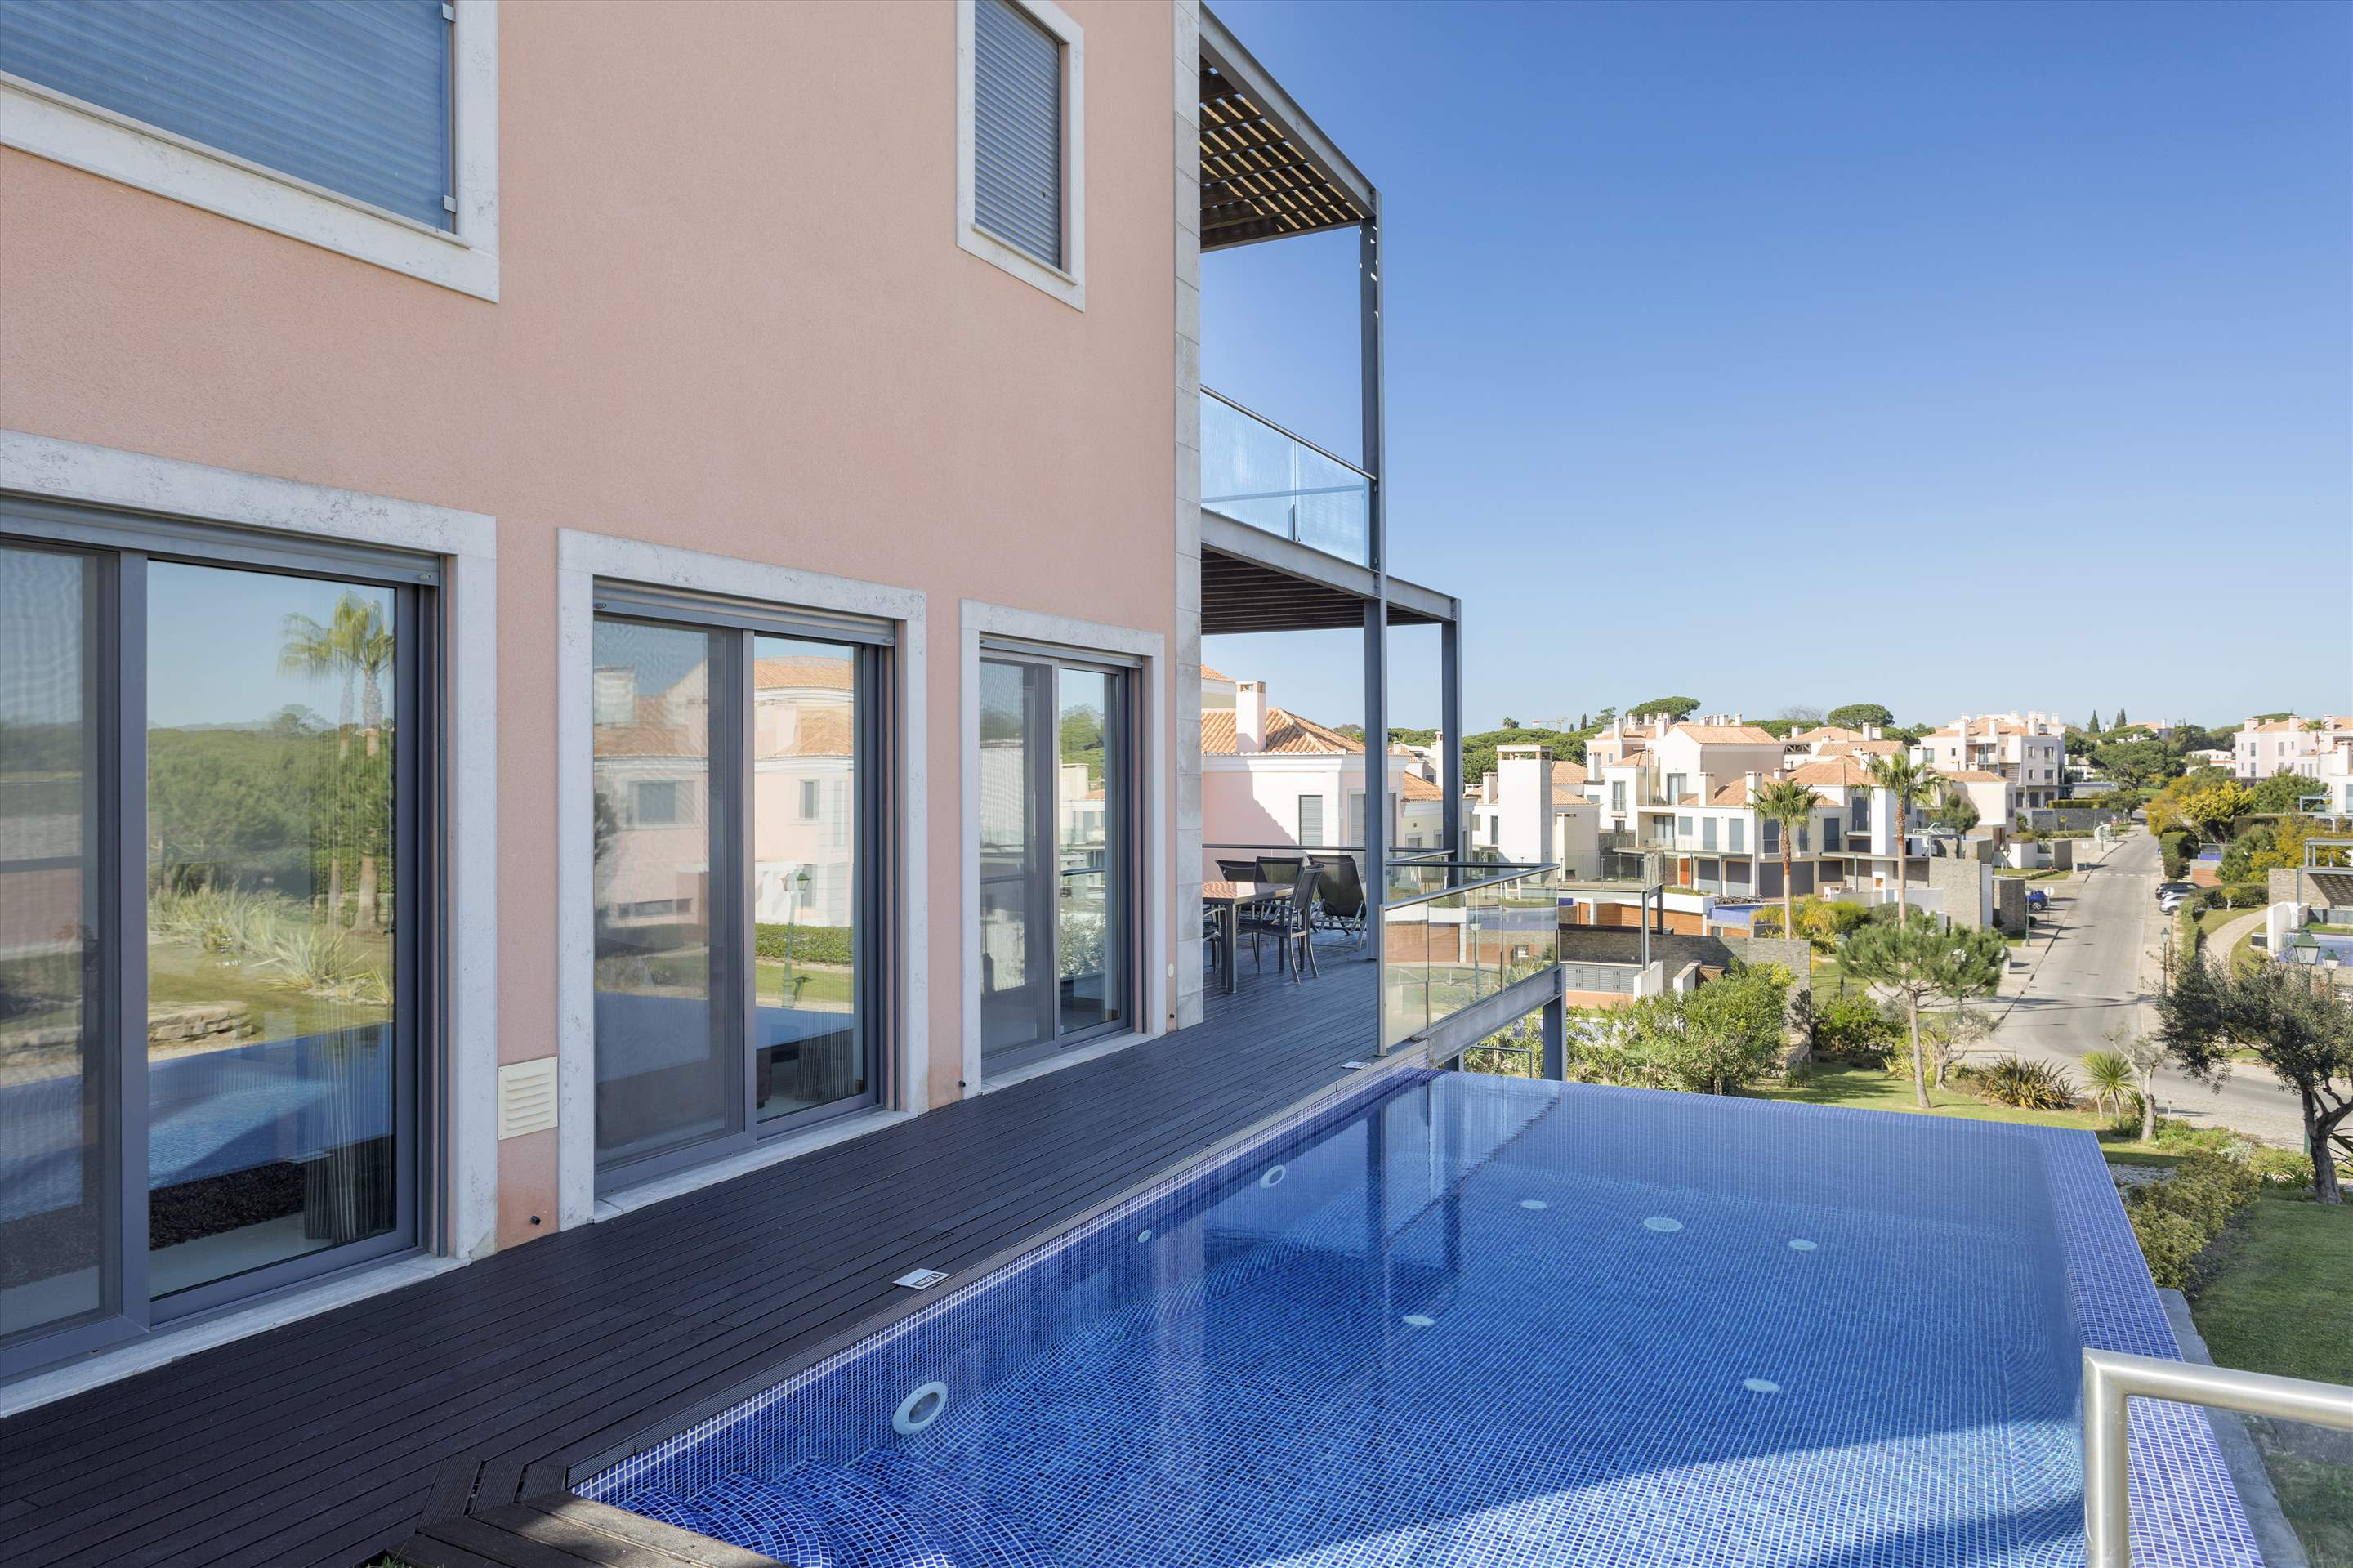 Apartment Fernanda, 2 bedroom apartment in Vale do Lobo, Algarve